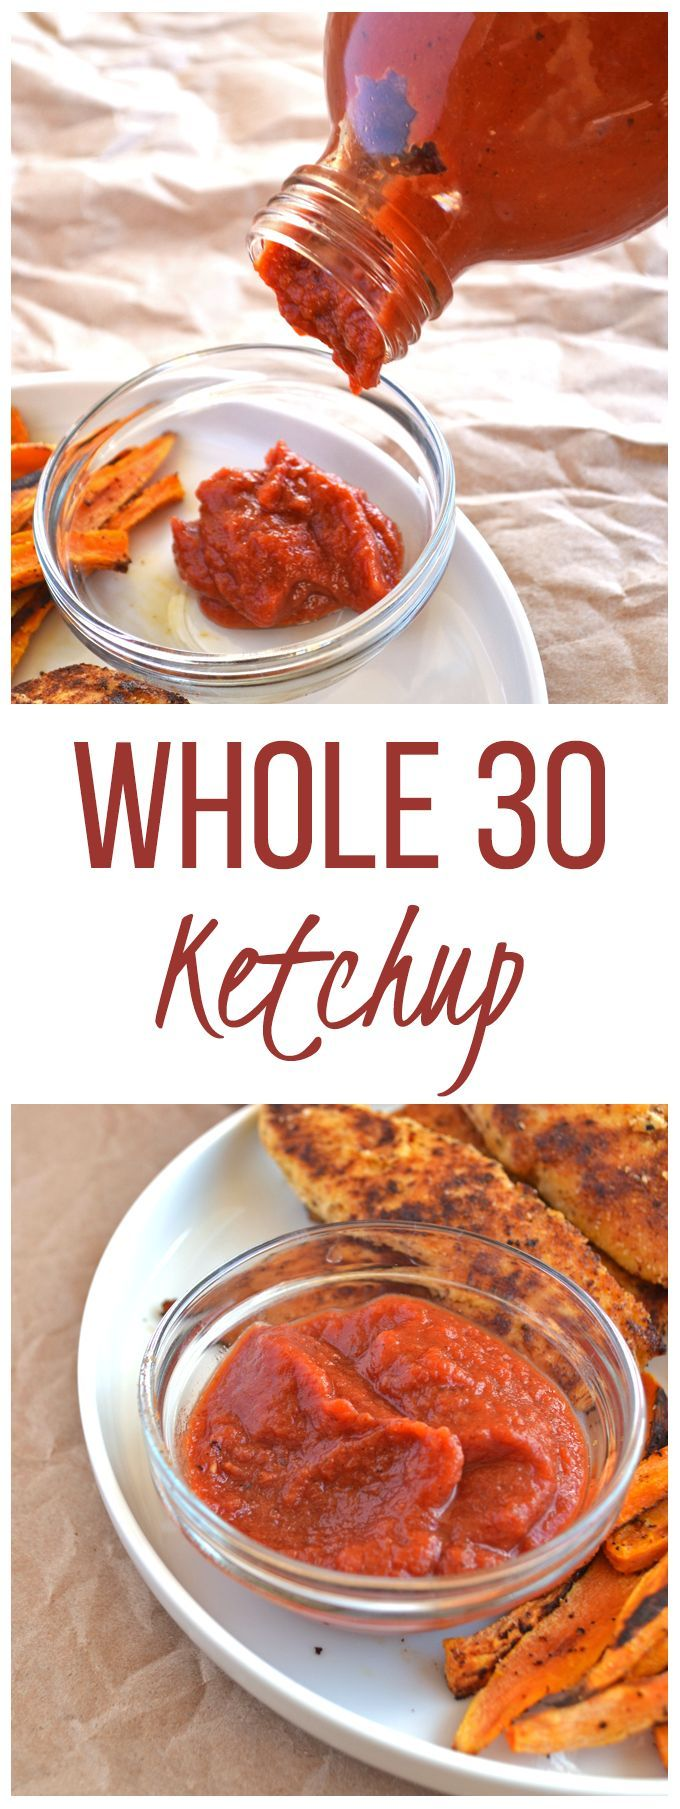 Whole30 Ketchup! So simple to make and a perfect addition to all those eggs! Paleo, sugar-free and full of flavor!